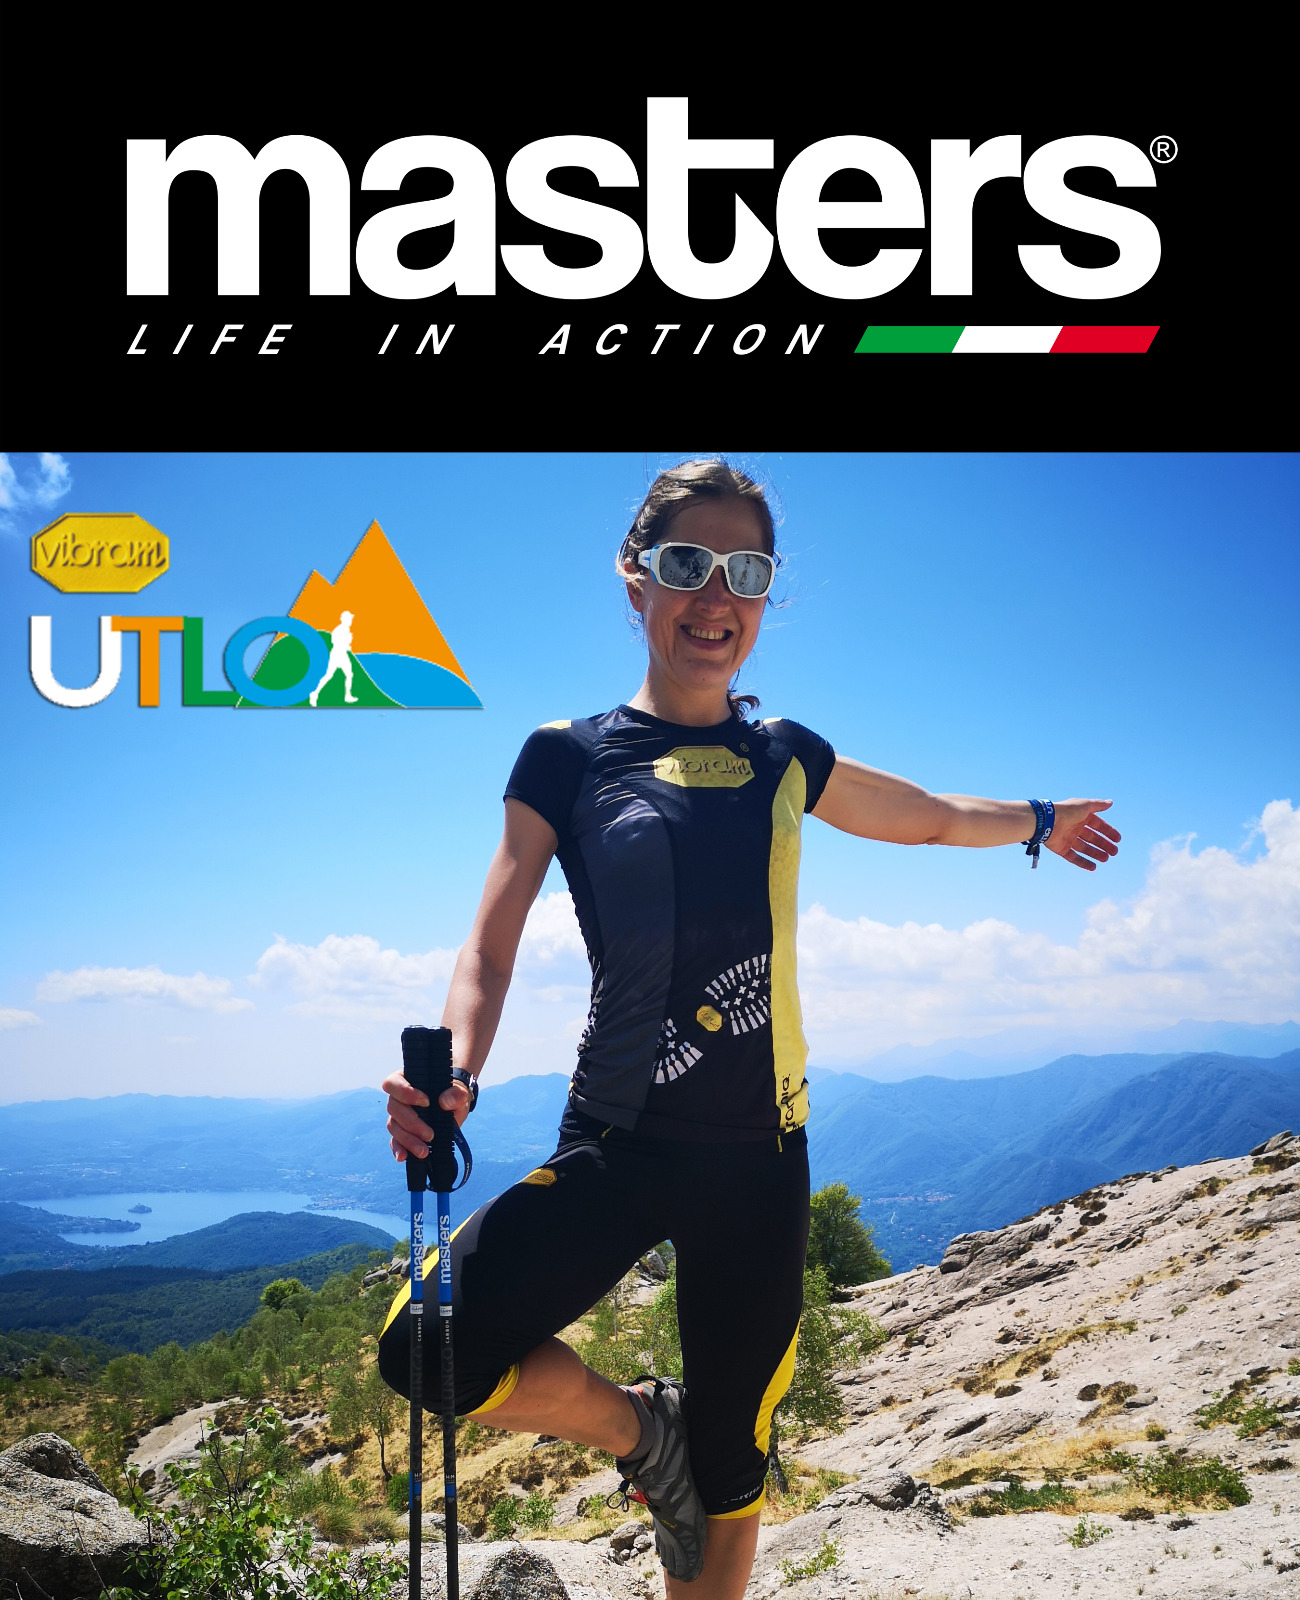 UTLO Events is proud to announce the new MASTERS Partnership 2020!